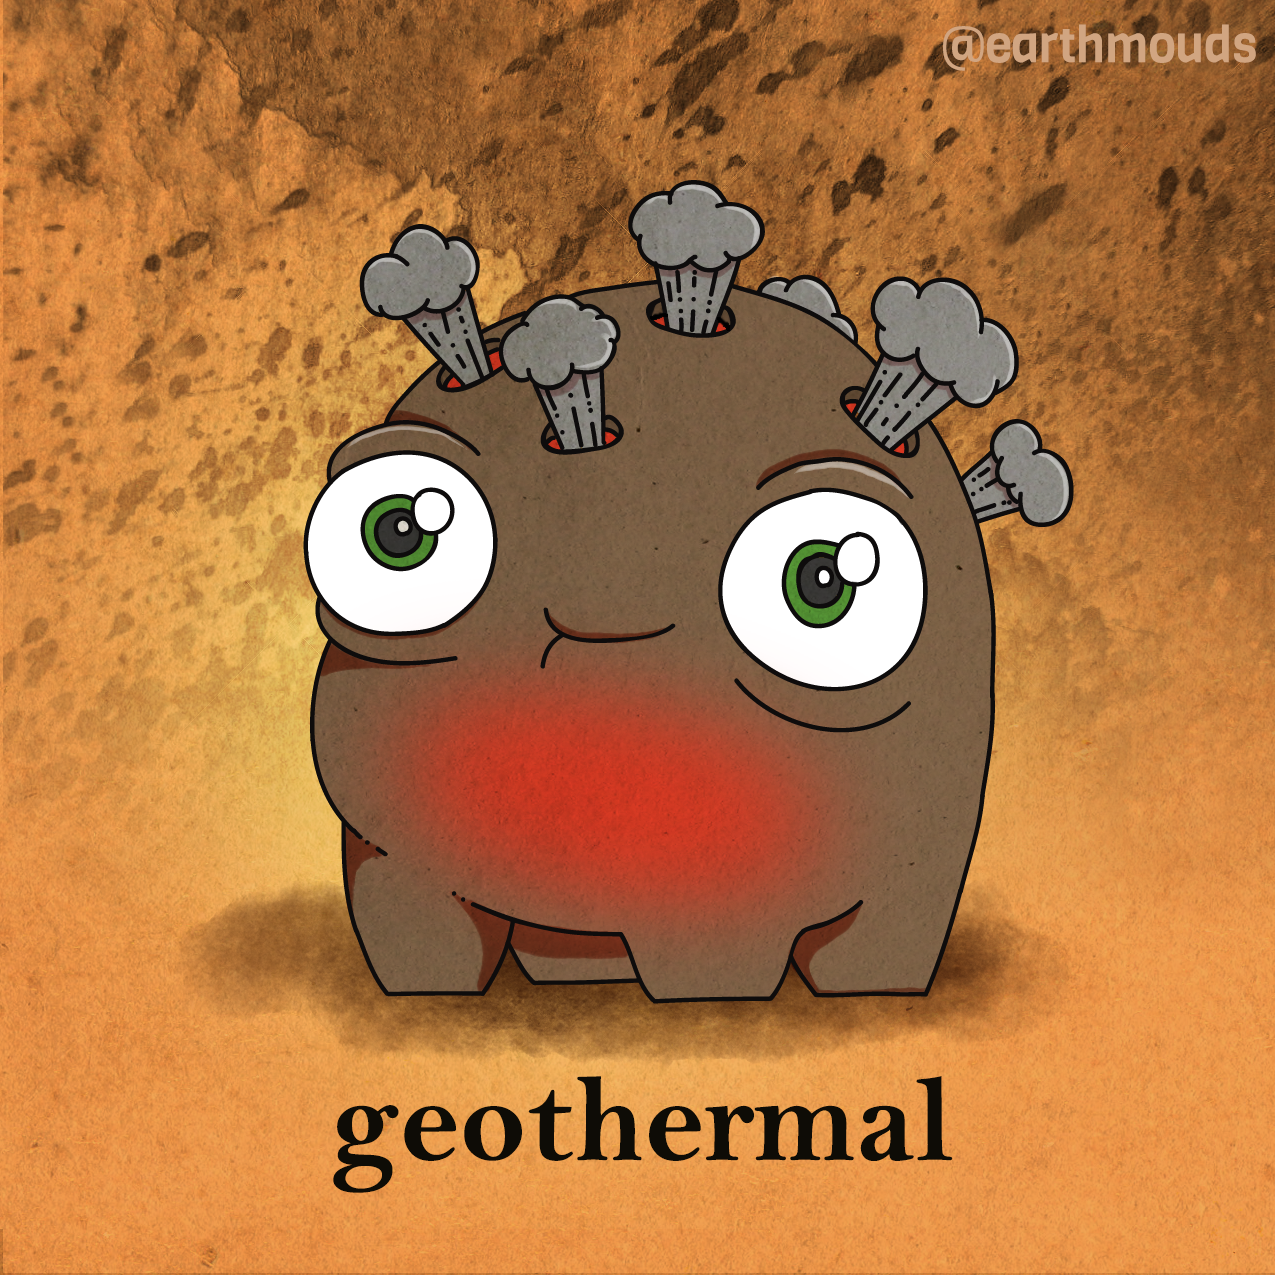 Geothermal Energy Heat From Within The Earth Is Responsible For Natural Geysers And Hot Springs Geolo Geothermal Energy Cool Science Facts Science For Kids